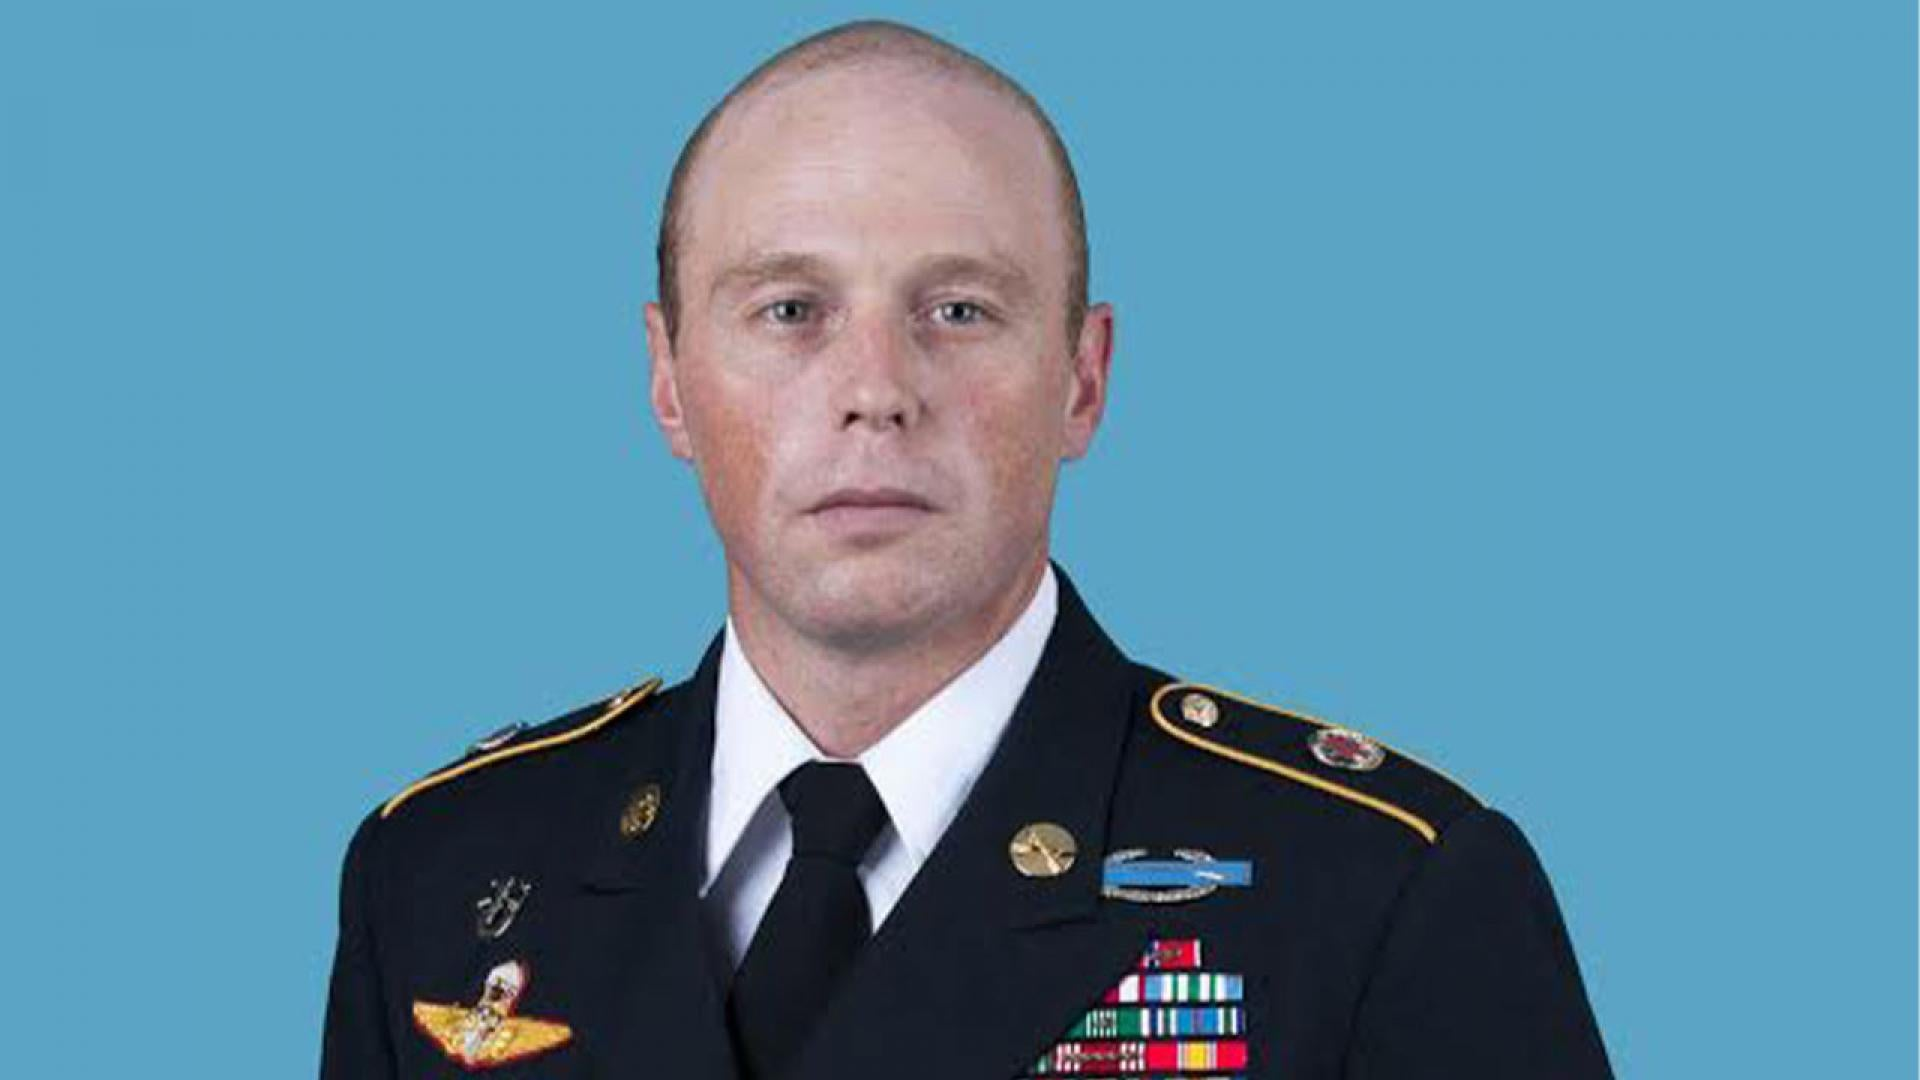 Master Sgt. William J. Lavigne II, 37, was one of the individuals whose bodies were discovered on the base